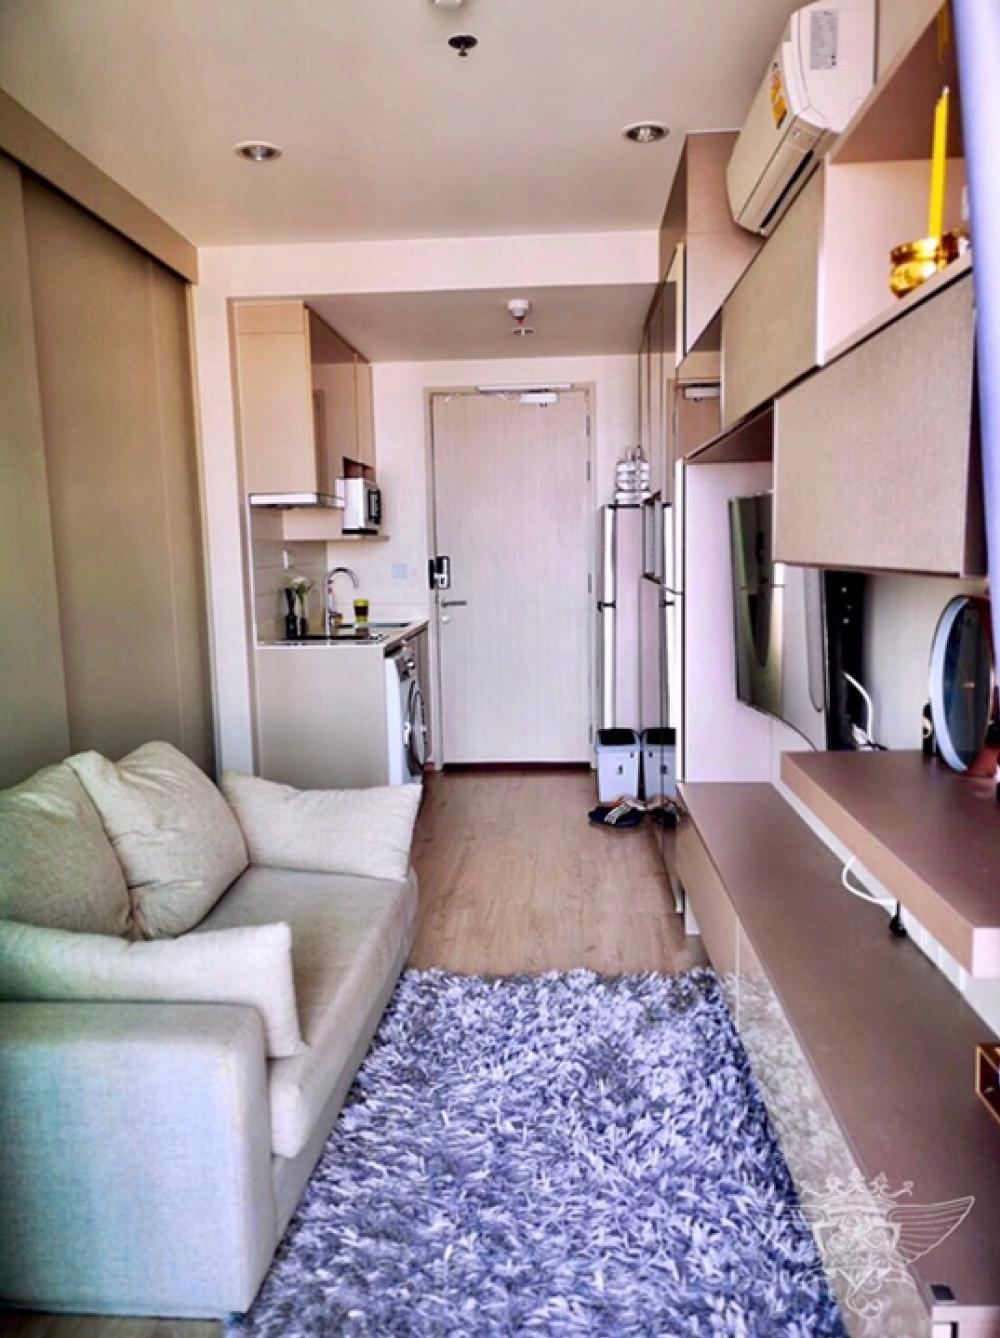 For SaleCondoSiam Paragon ,Chulalongkorn,Samyan : Sale🔥🔥, 1 bedroom, fully furnished, ready to move in